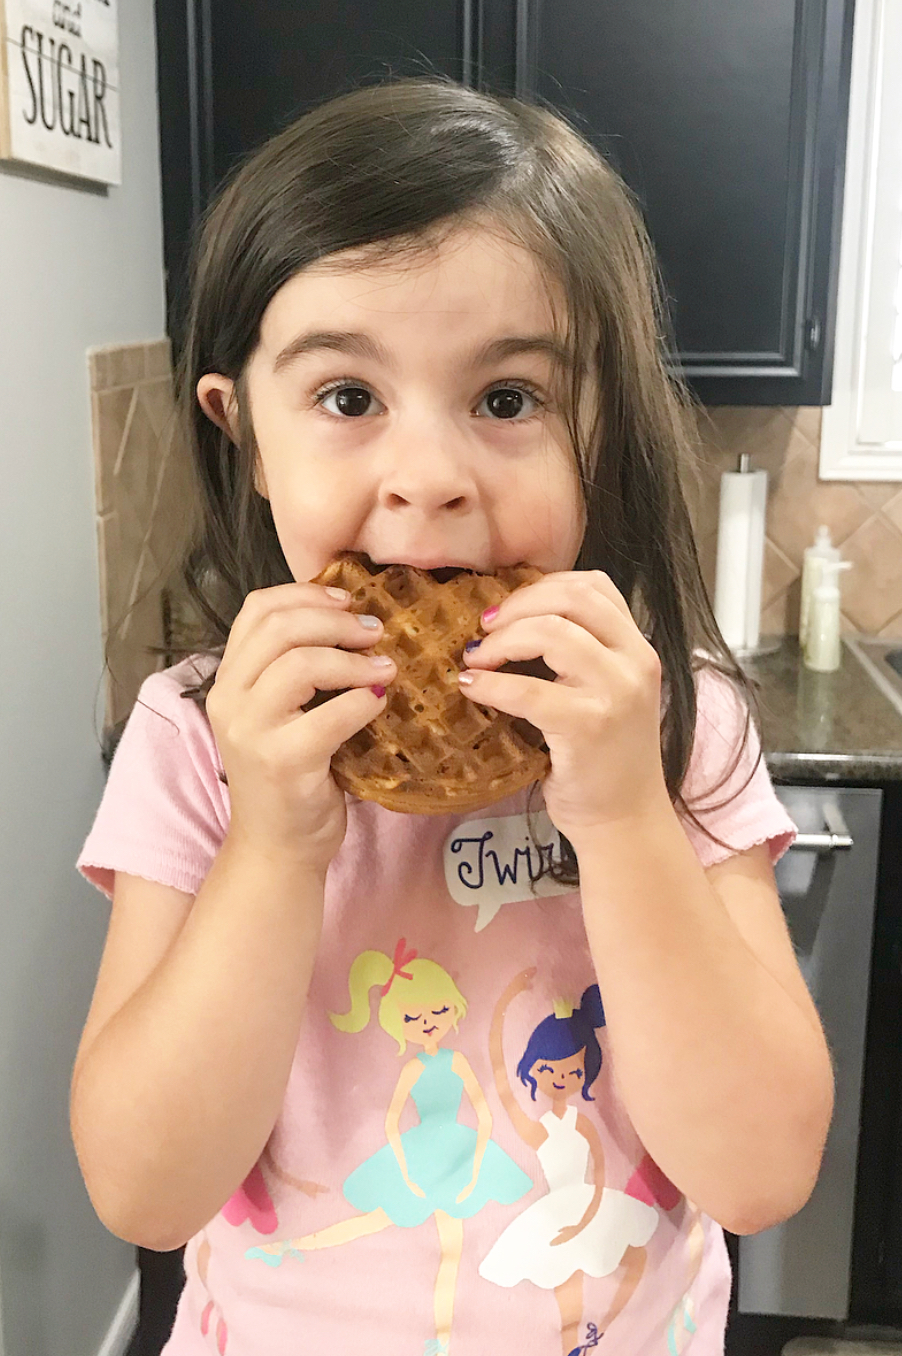 My 4-year-old caught in the act sneaking a waffle!